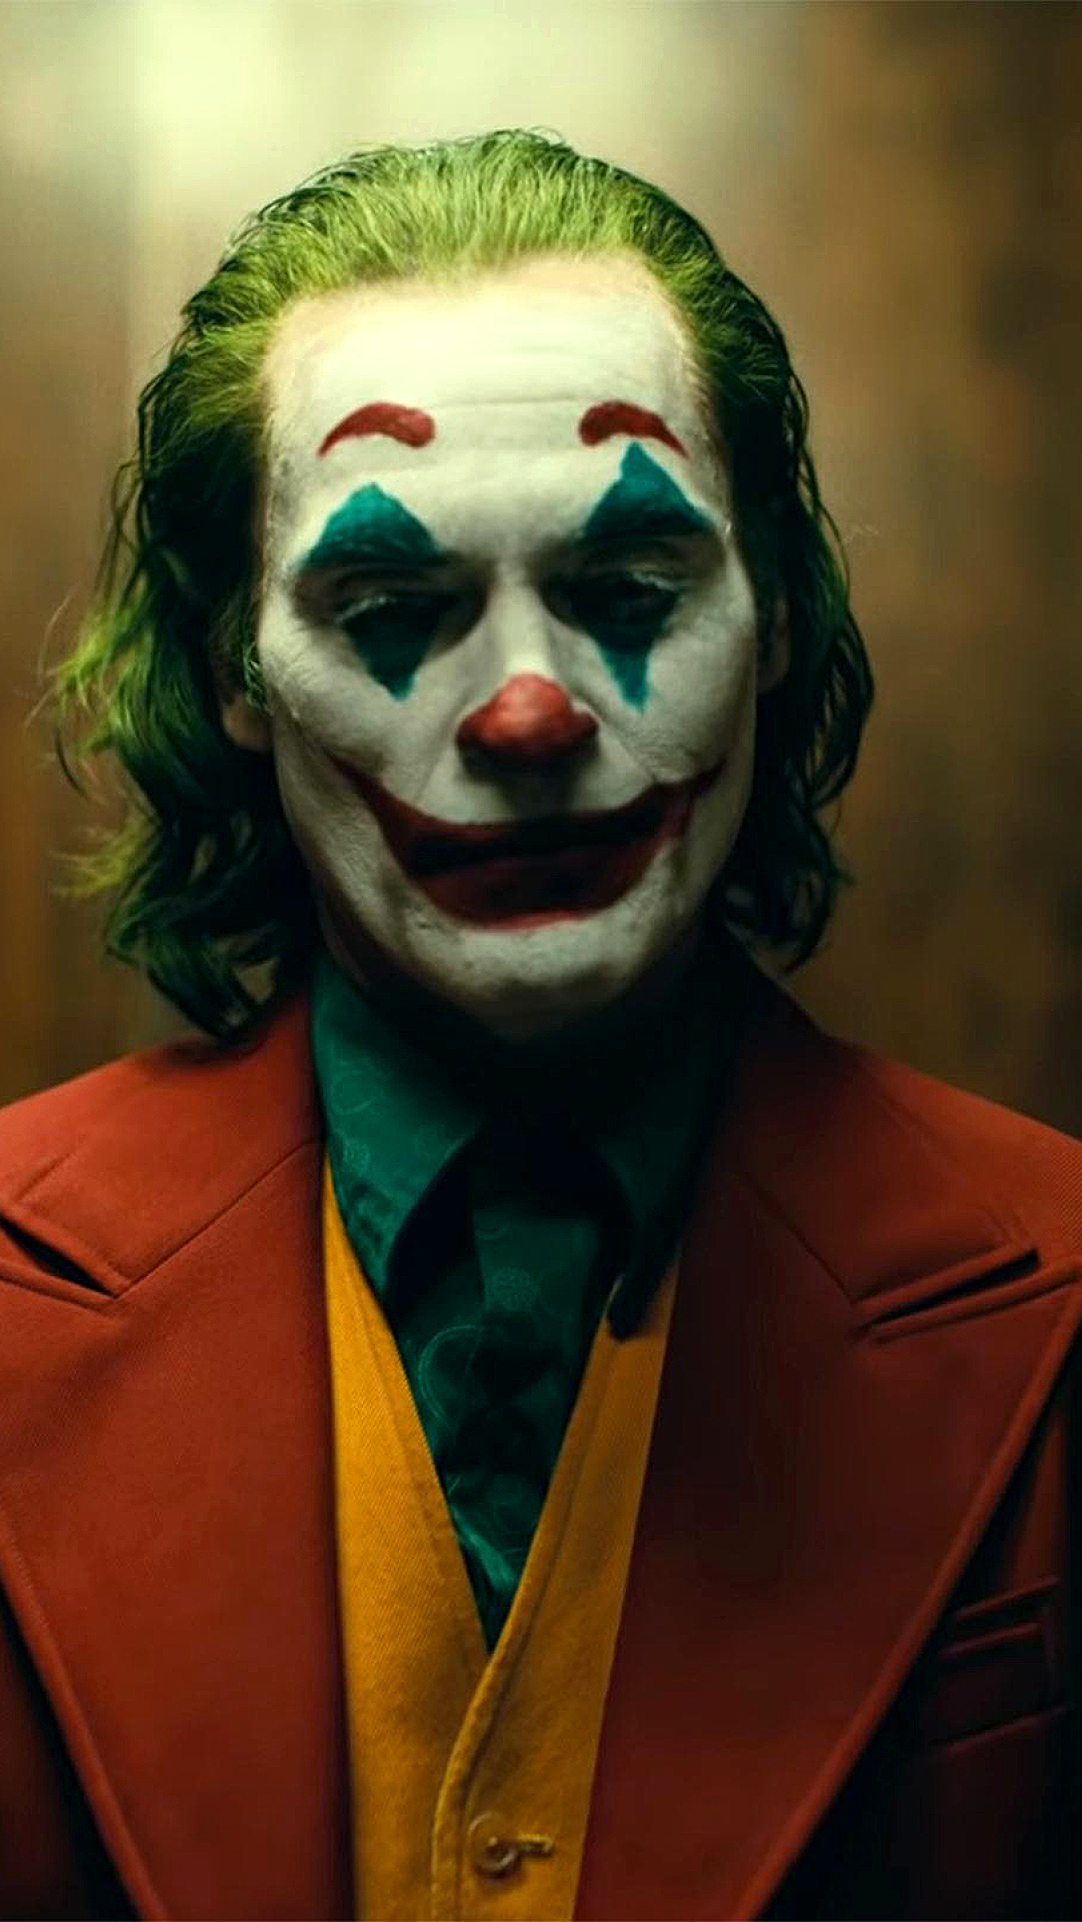 Joaquin Phoenix As Joker Wallpaper Hd Movies 4k Wallpapers Images Photos And Background